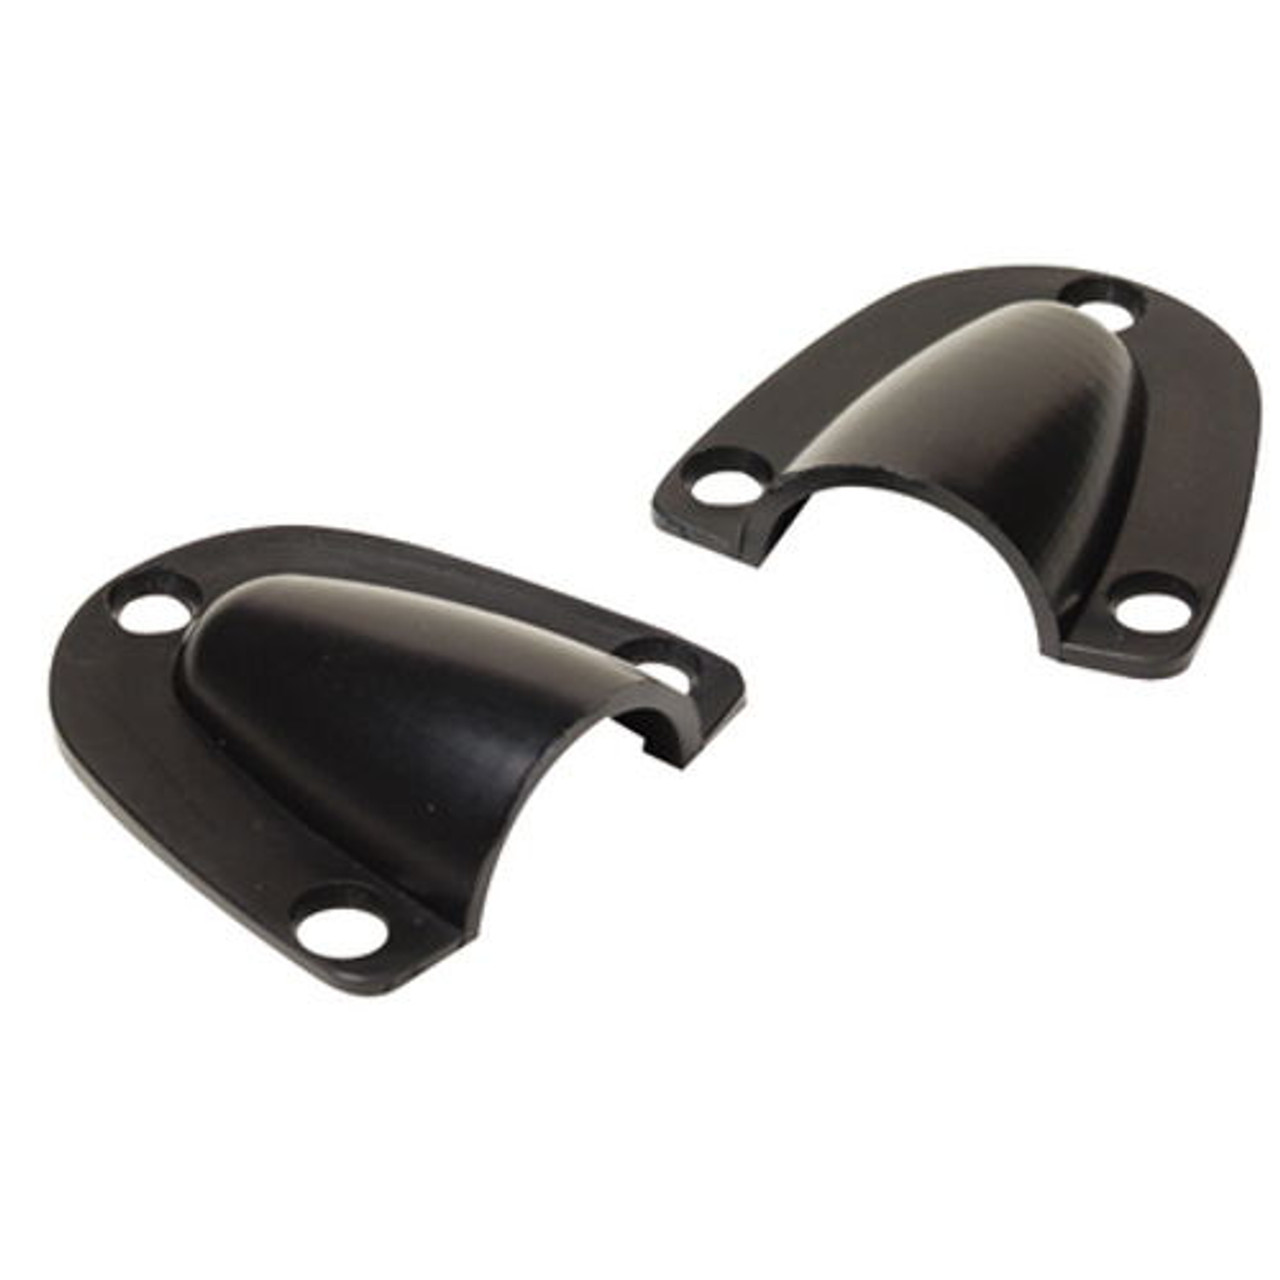 Pack of 2 Small Black Plastic Clam Shell Ventilators or Wire Covers for Boats